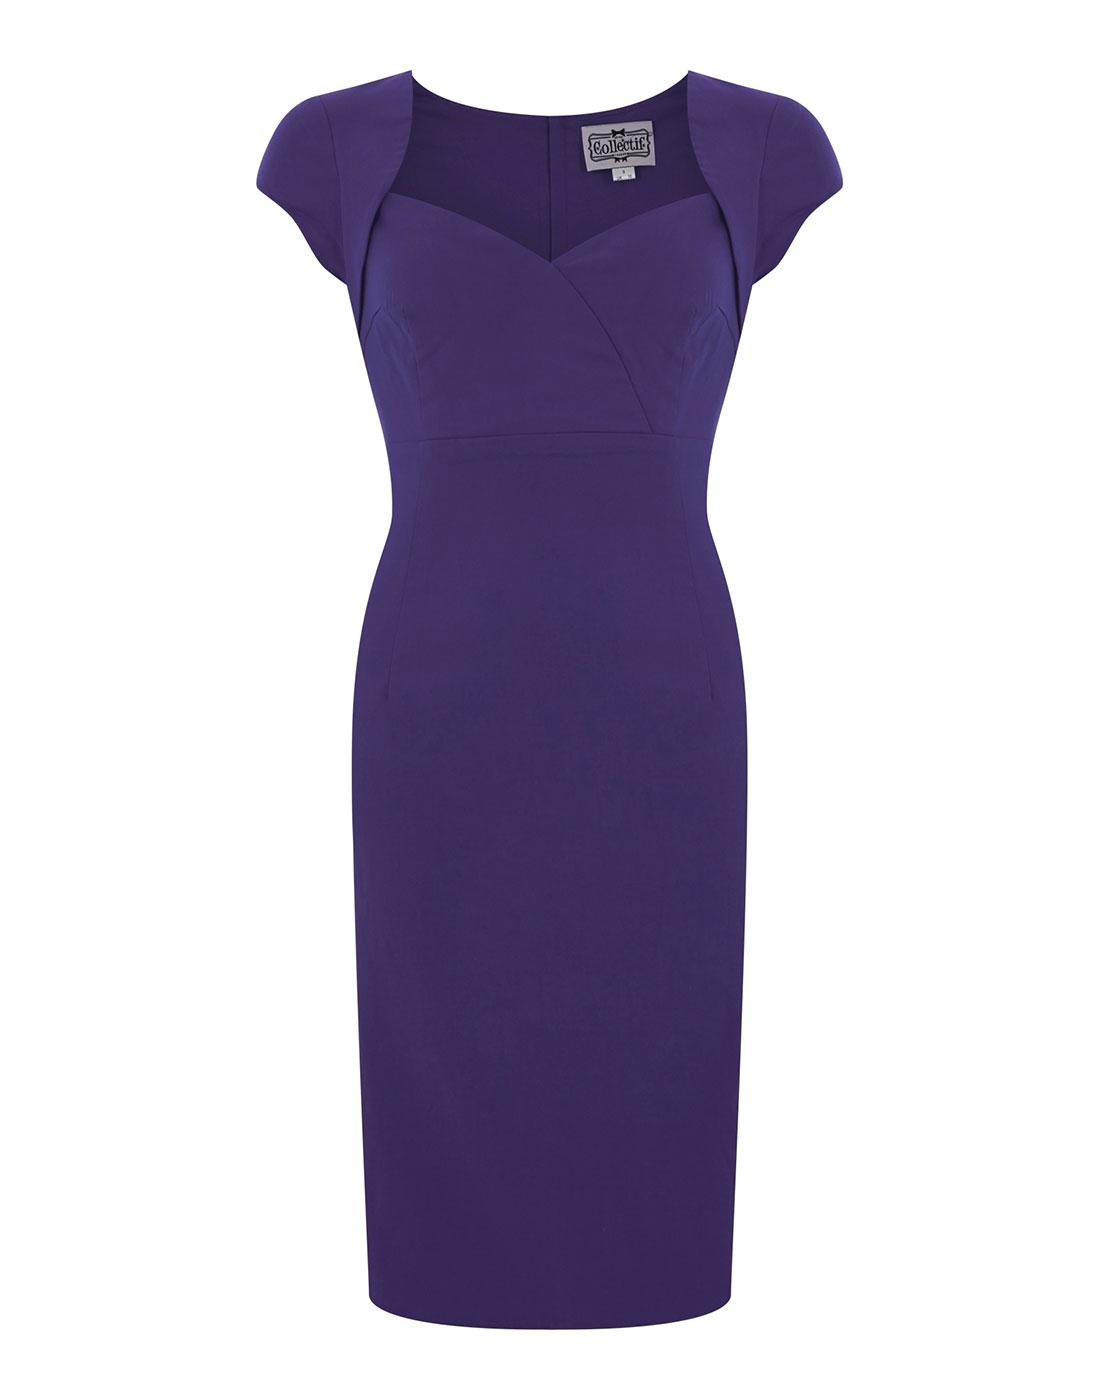 Regina COLLECTIF Retro 50s Purple Pencil Dress